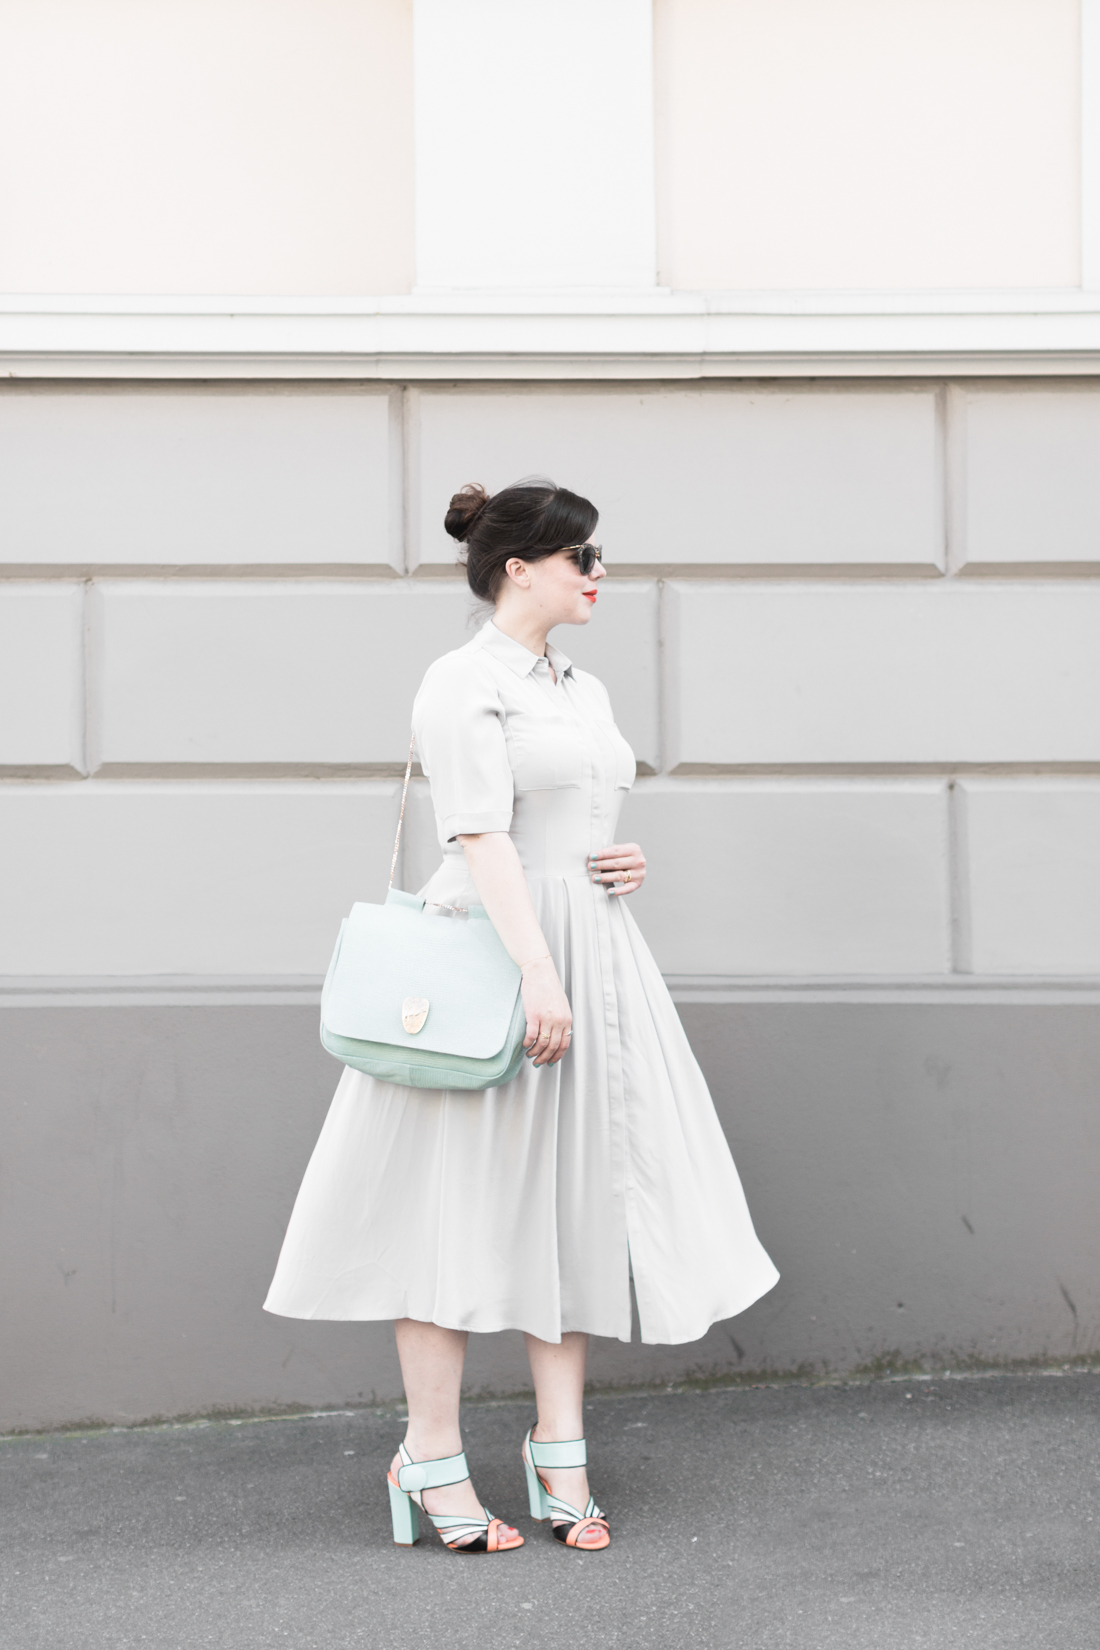 1100 mint cosmoparis rose et josephine sac robe ybd kelly love copyright photos Pauline paulinefashionblog.com 2 Mint